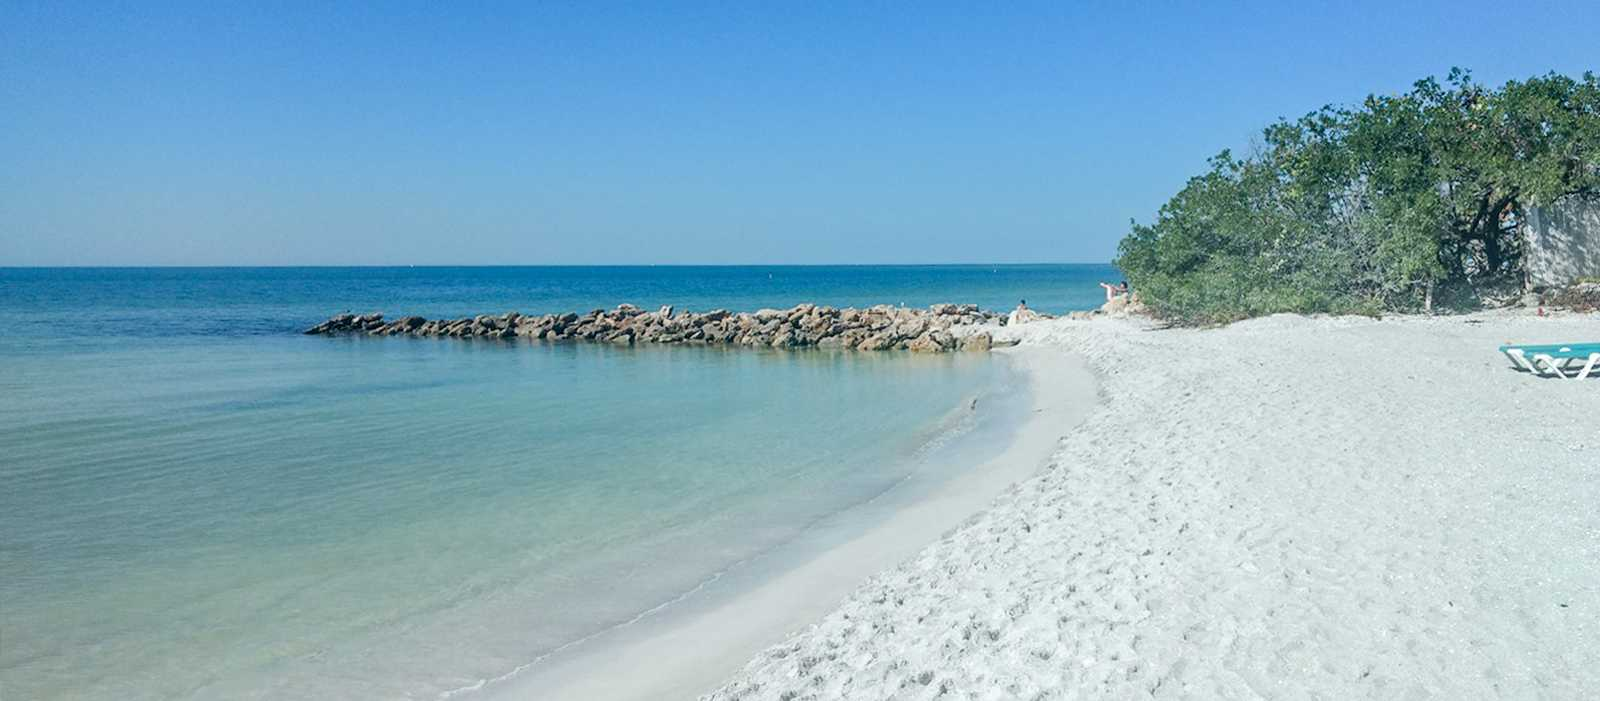 Lido Beach in Sarasota